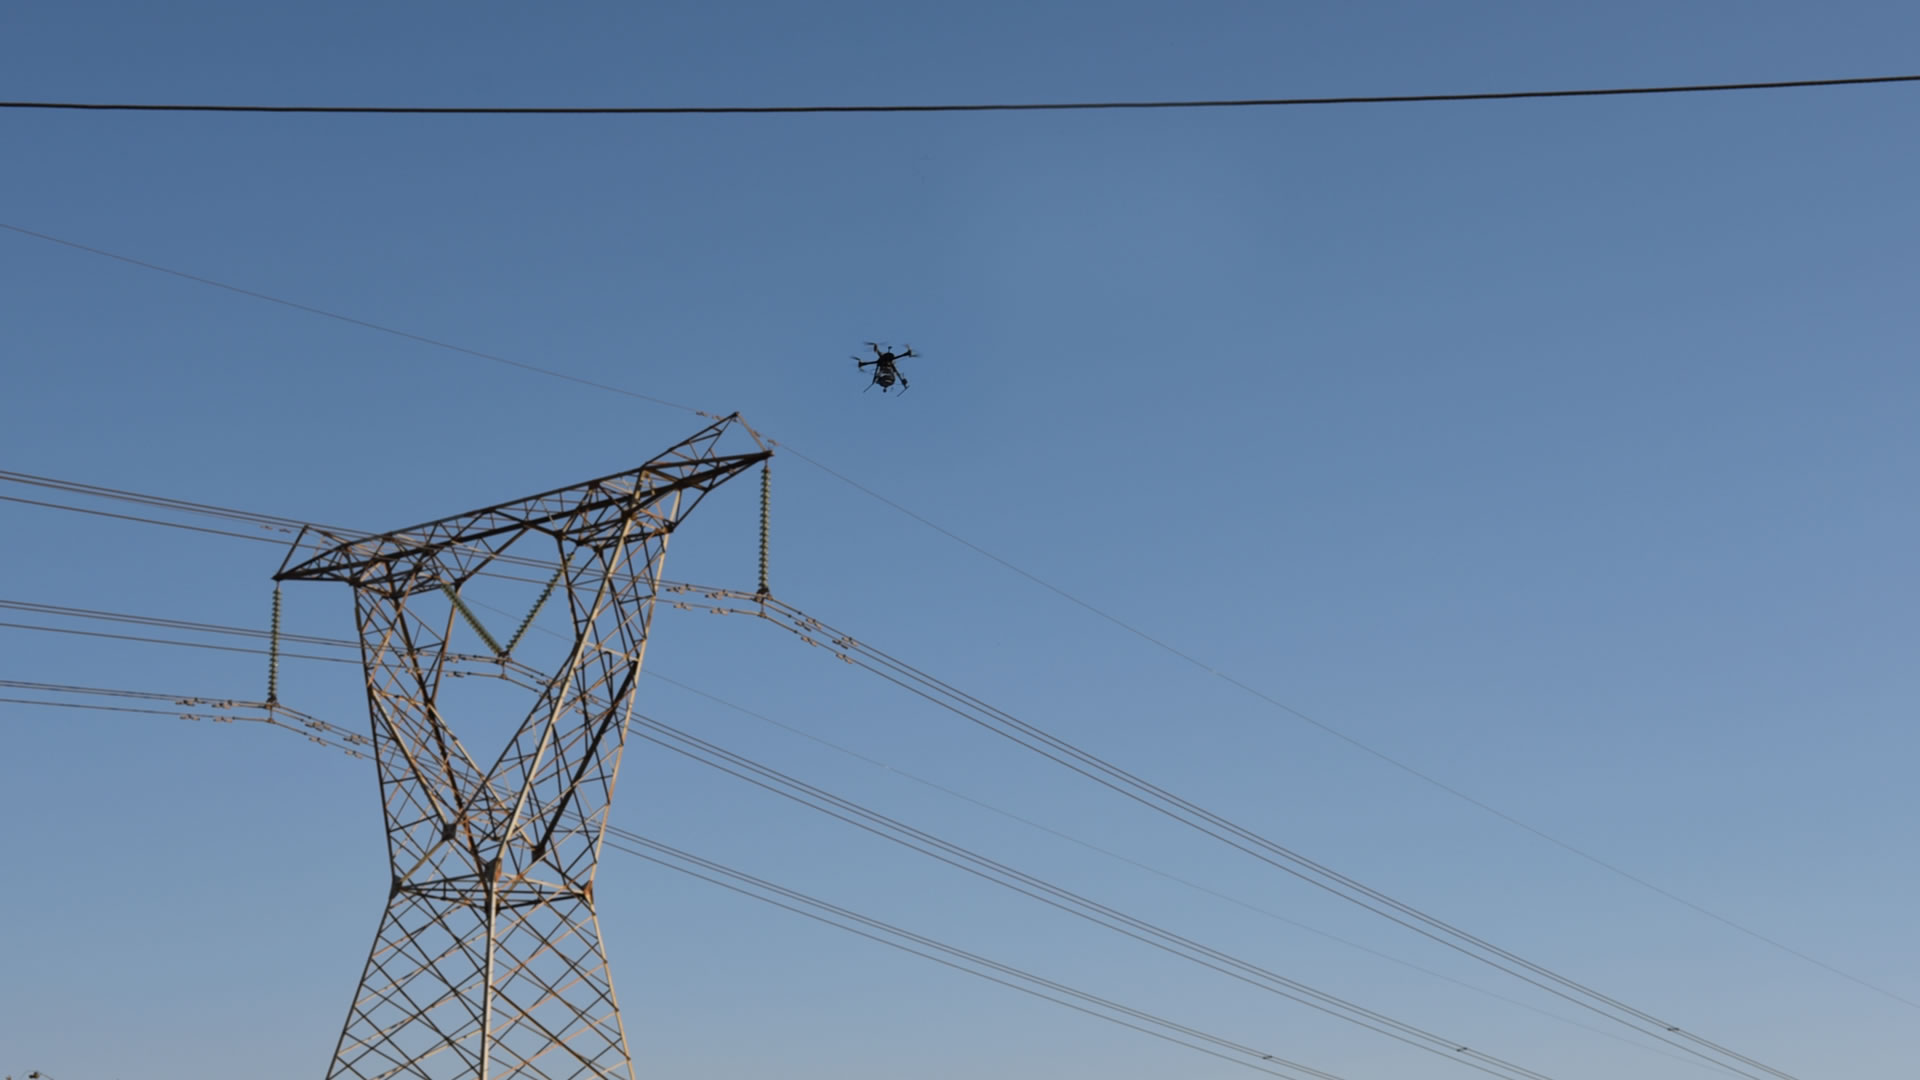 Drones for powerline inspection - Aerialtronics